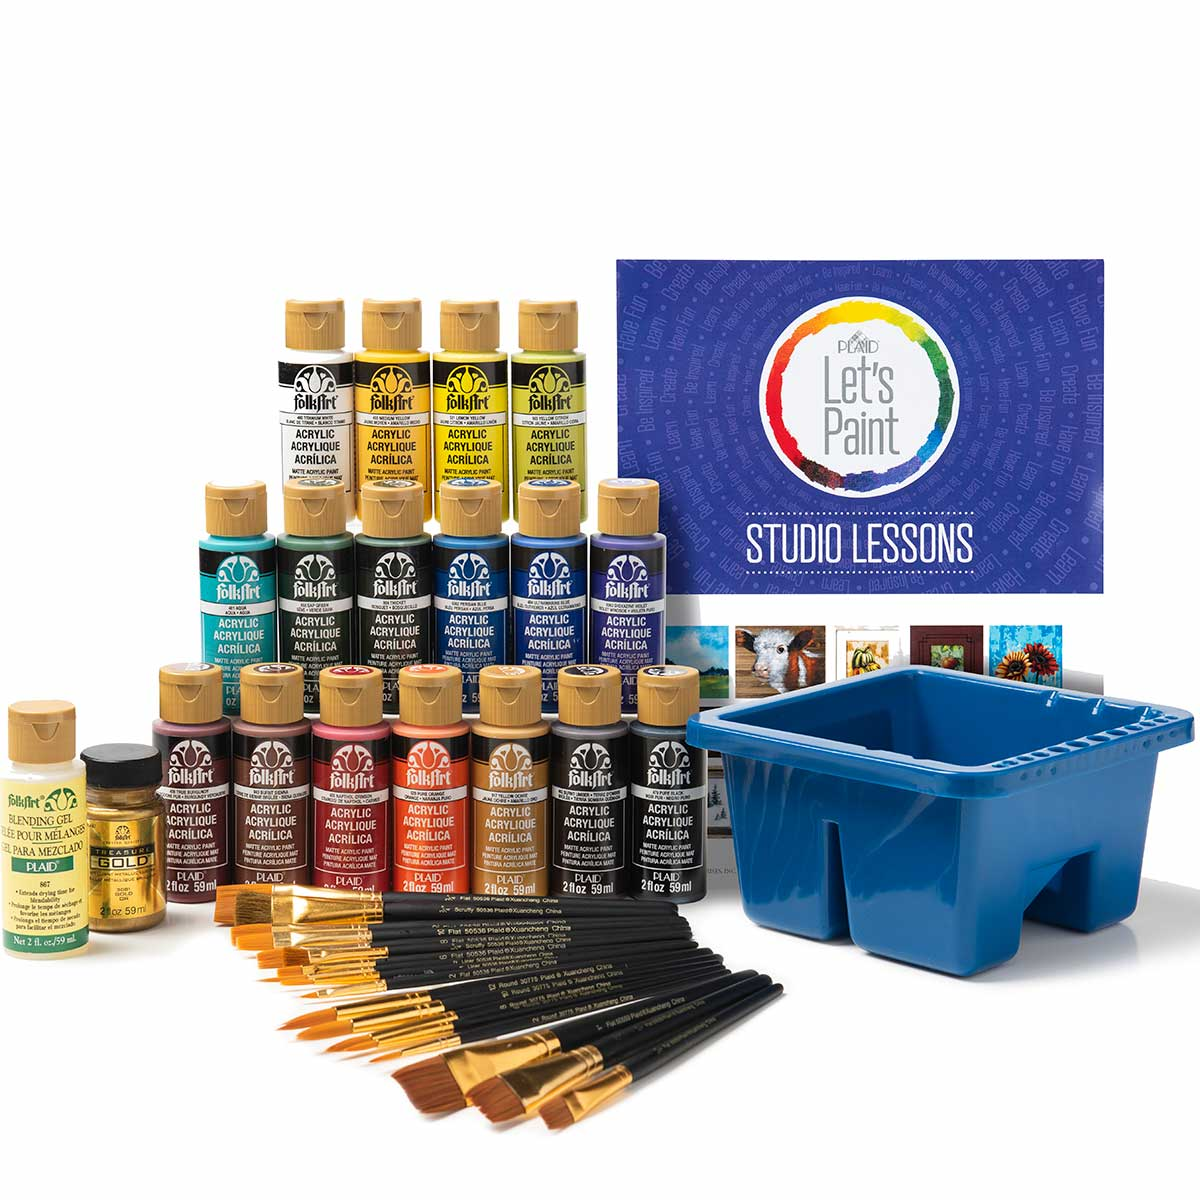 FolkArt ® Studio Series Let's Paint Kit